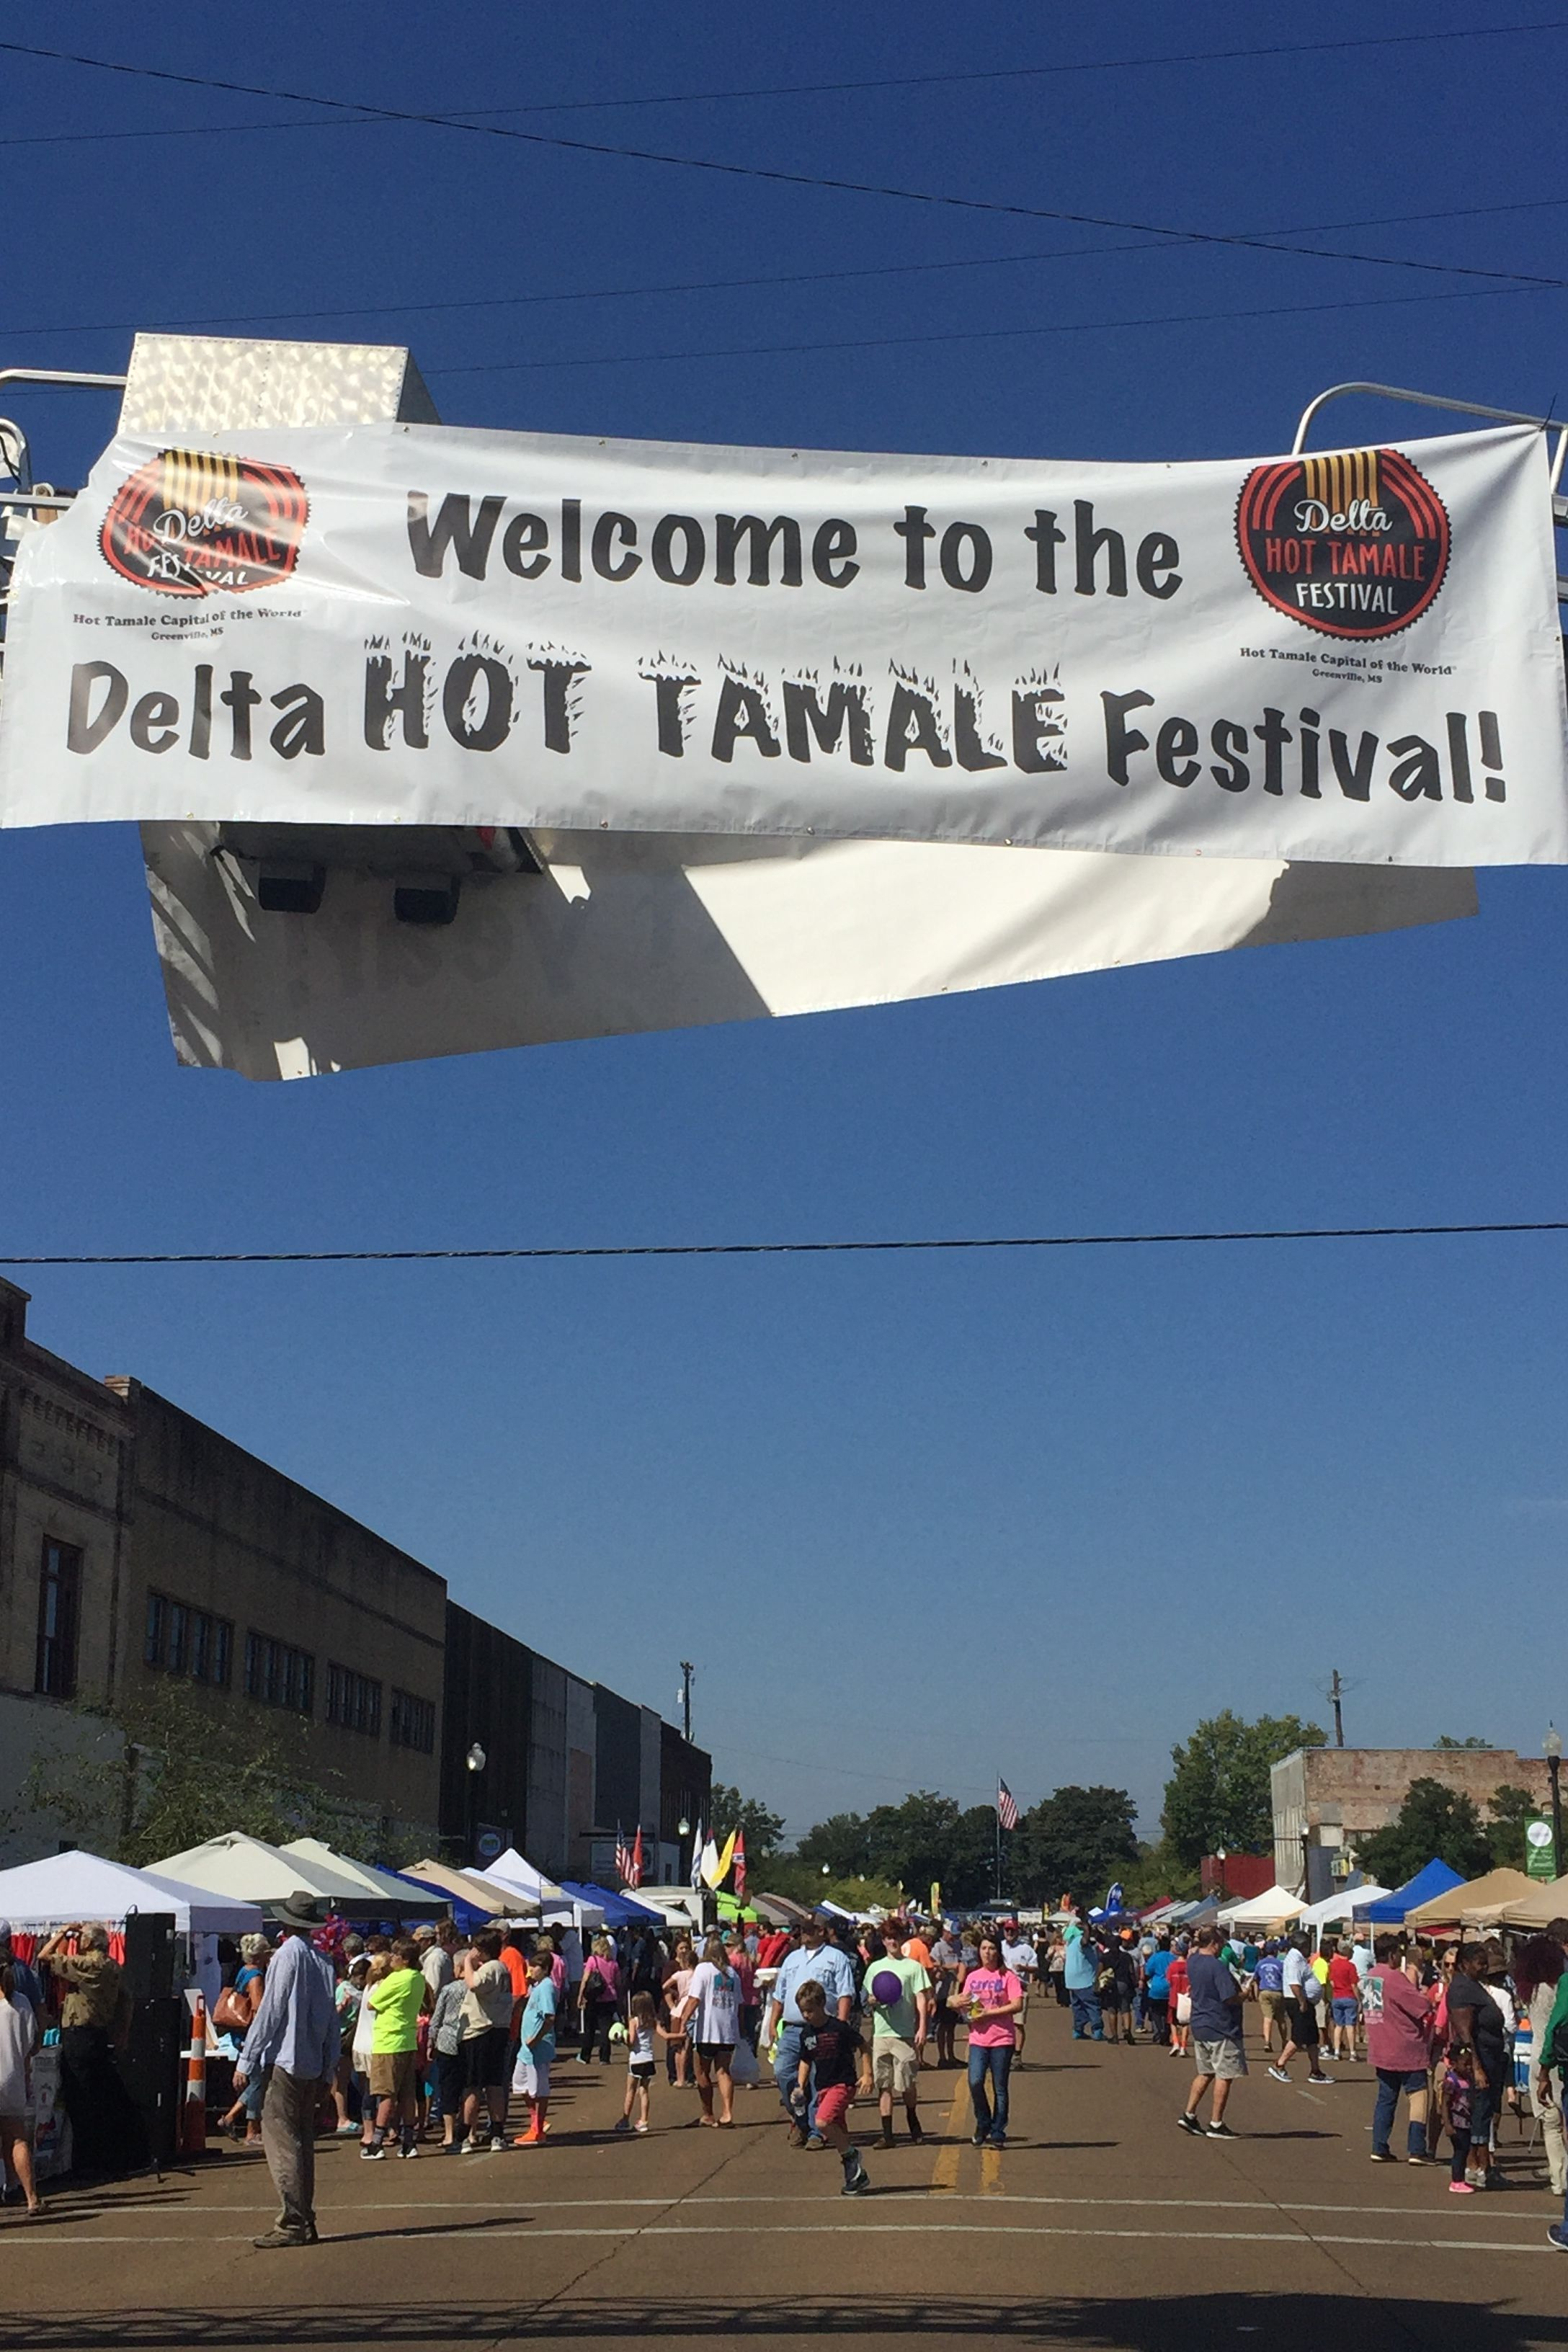 8 Things To Know Before You Go to the Delta Hot Tamale Festival